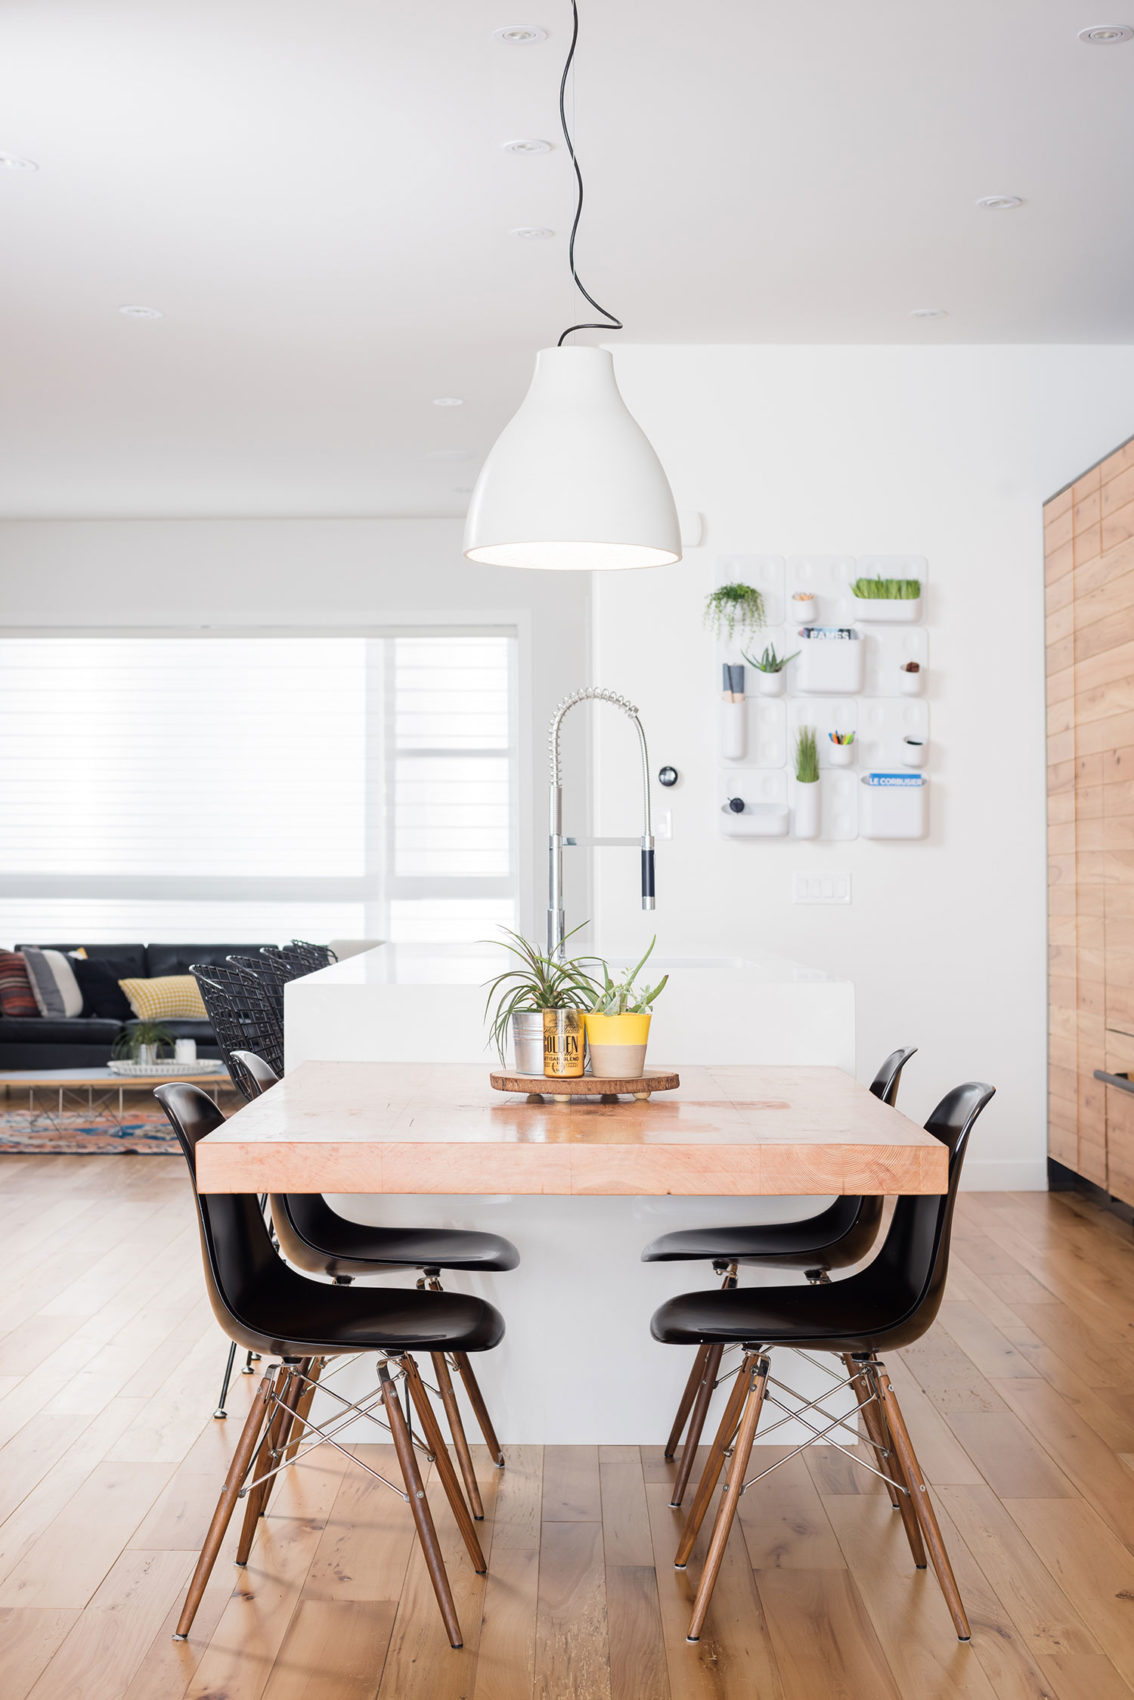 Project b95, a Modern Infill in Calgary by Beyond Homes (9)